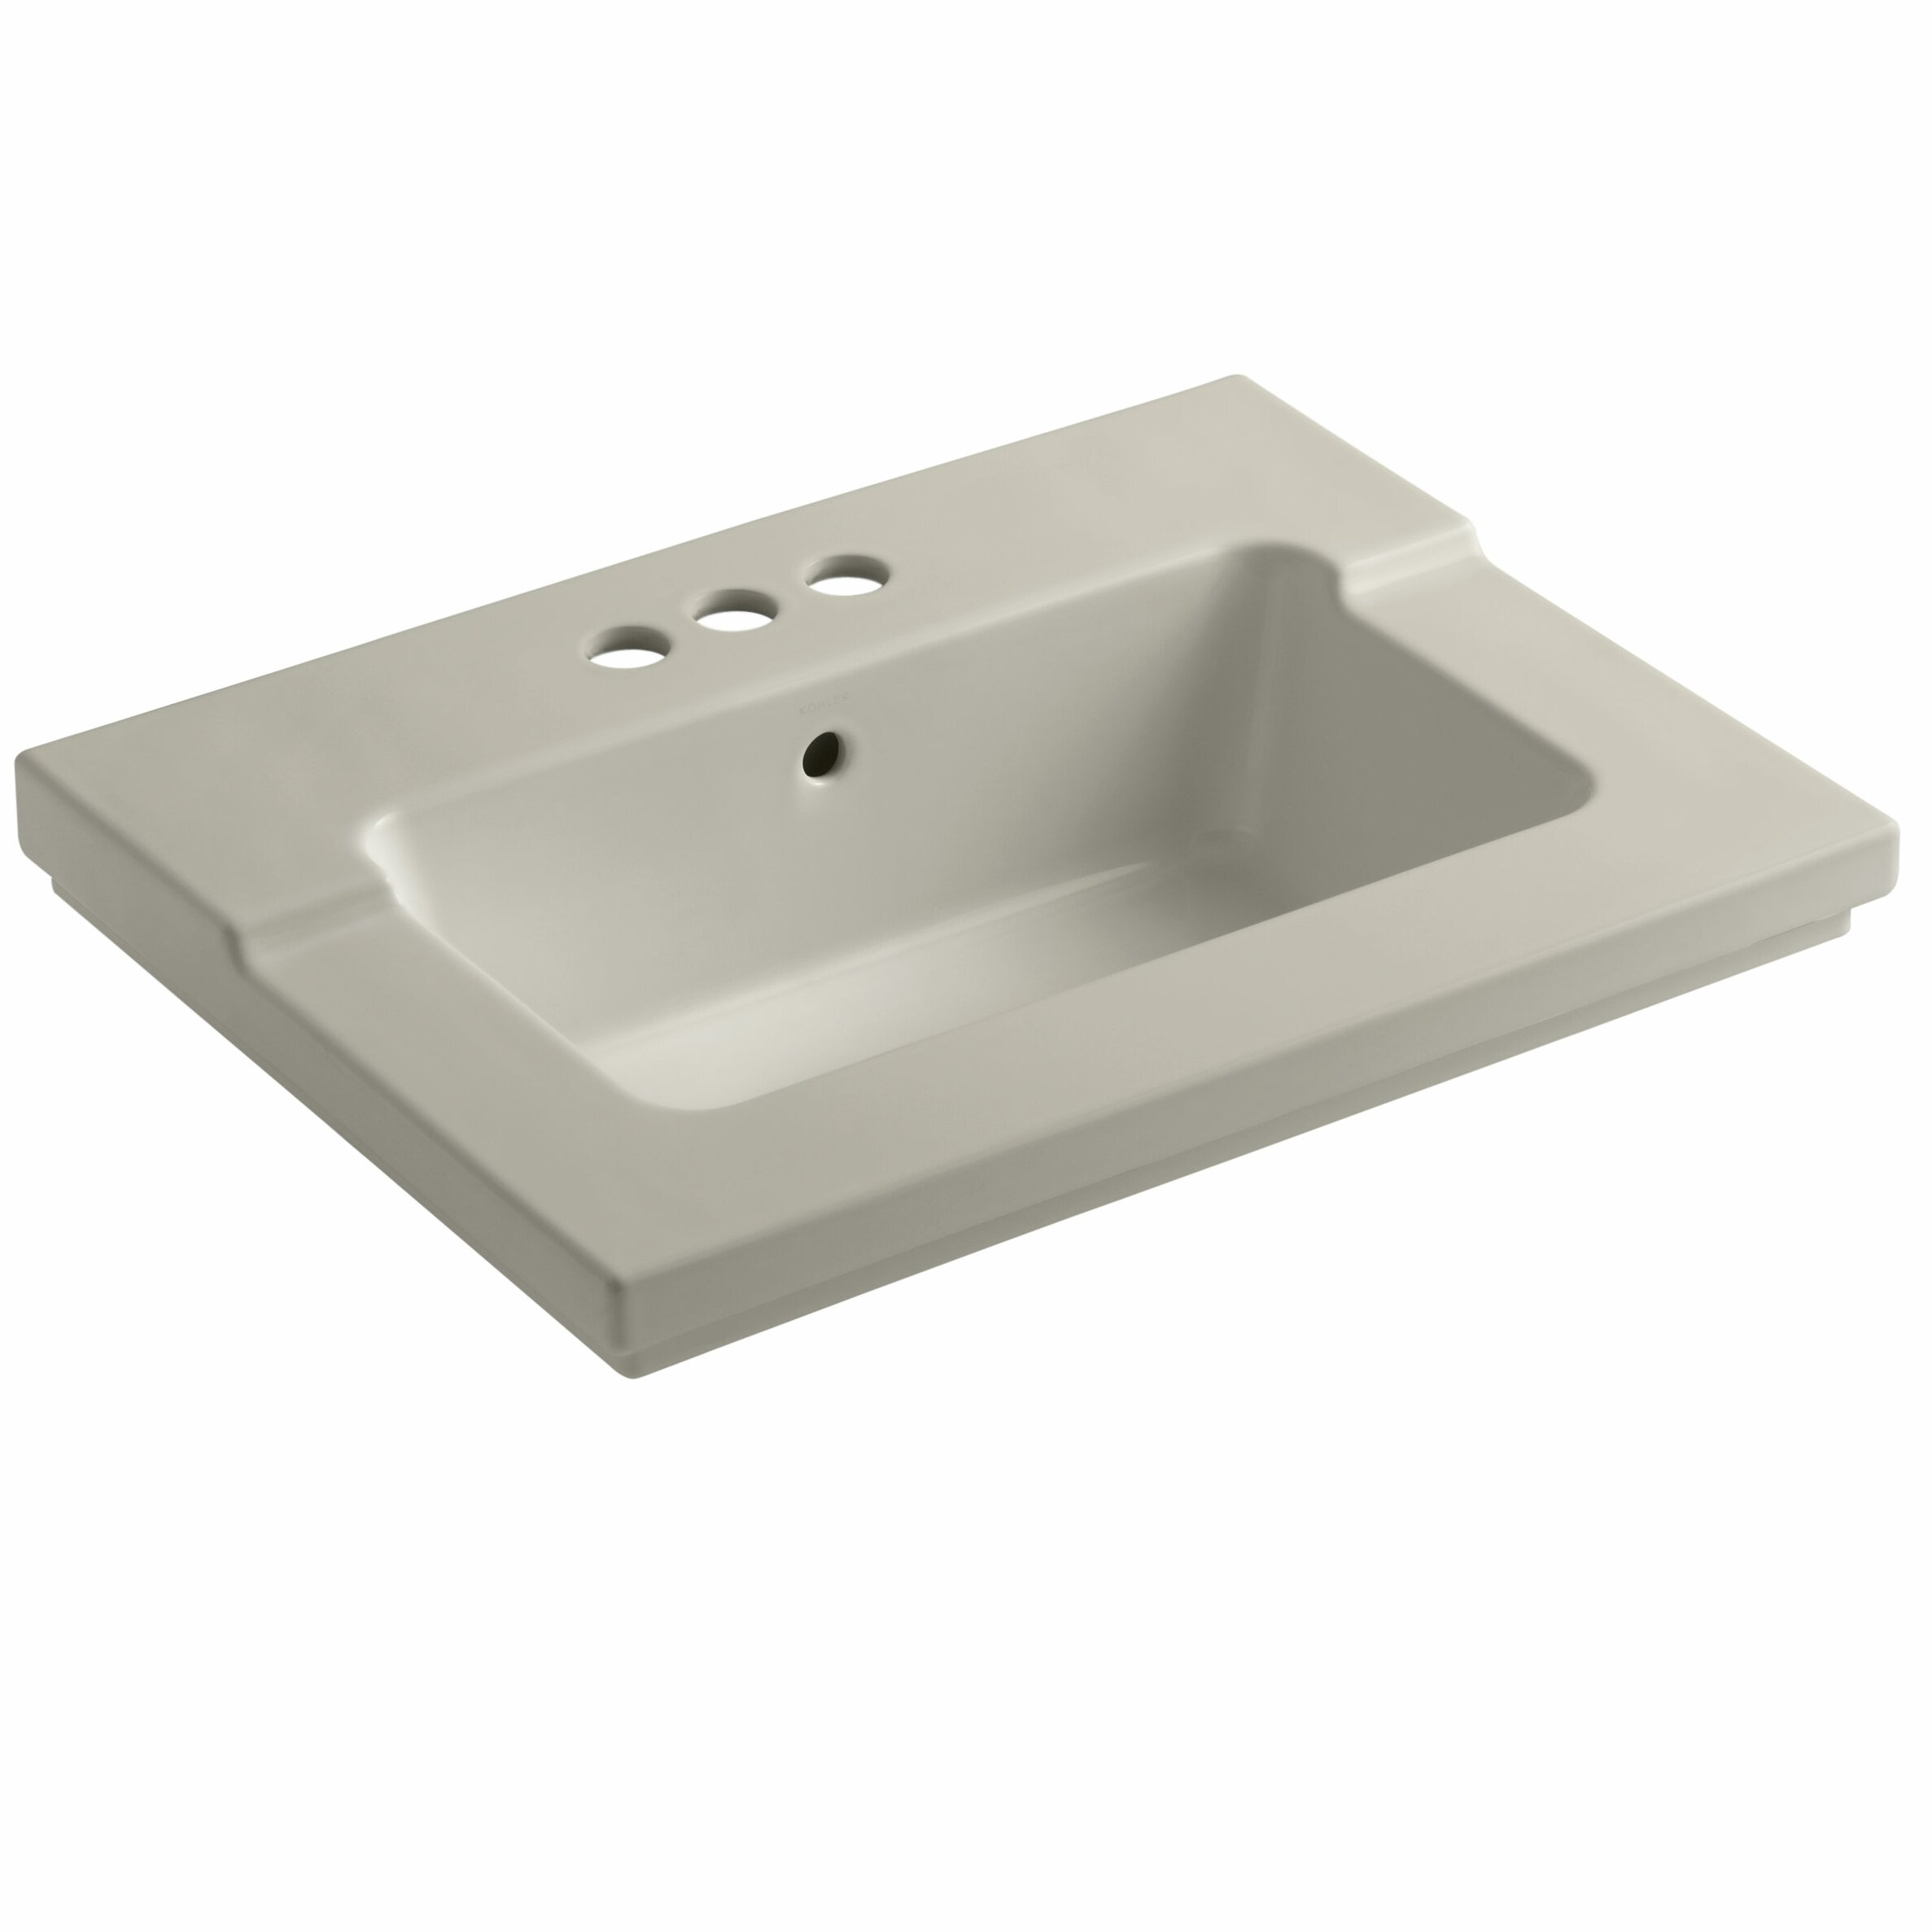 Kohler Tresham Vanity Top Sink by Kohler Tresham Vanity Top Bathroom  Sink With Centerset. 20    Kohler Tresham Vanity Top Sink     Plumbing Amp Hardware